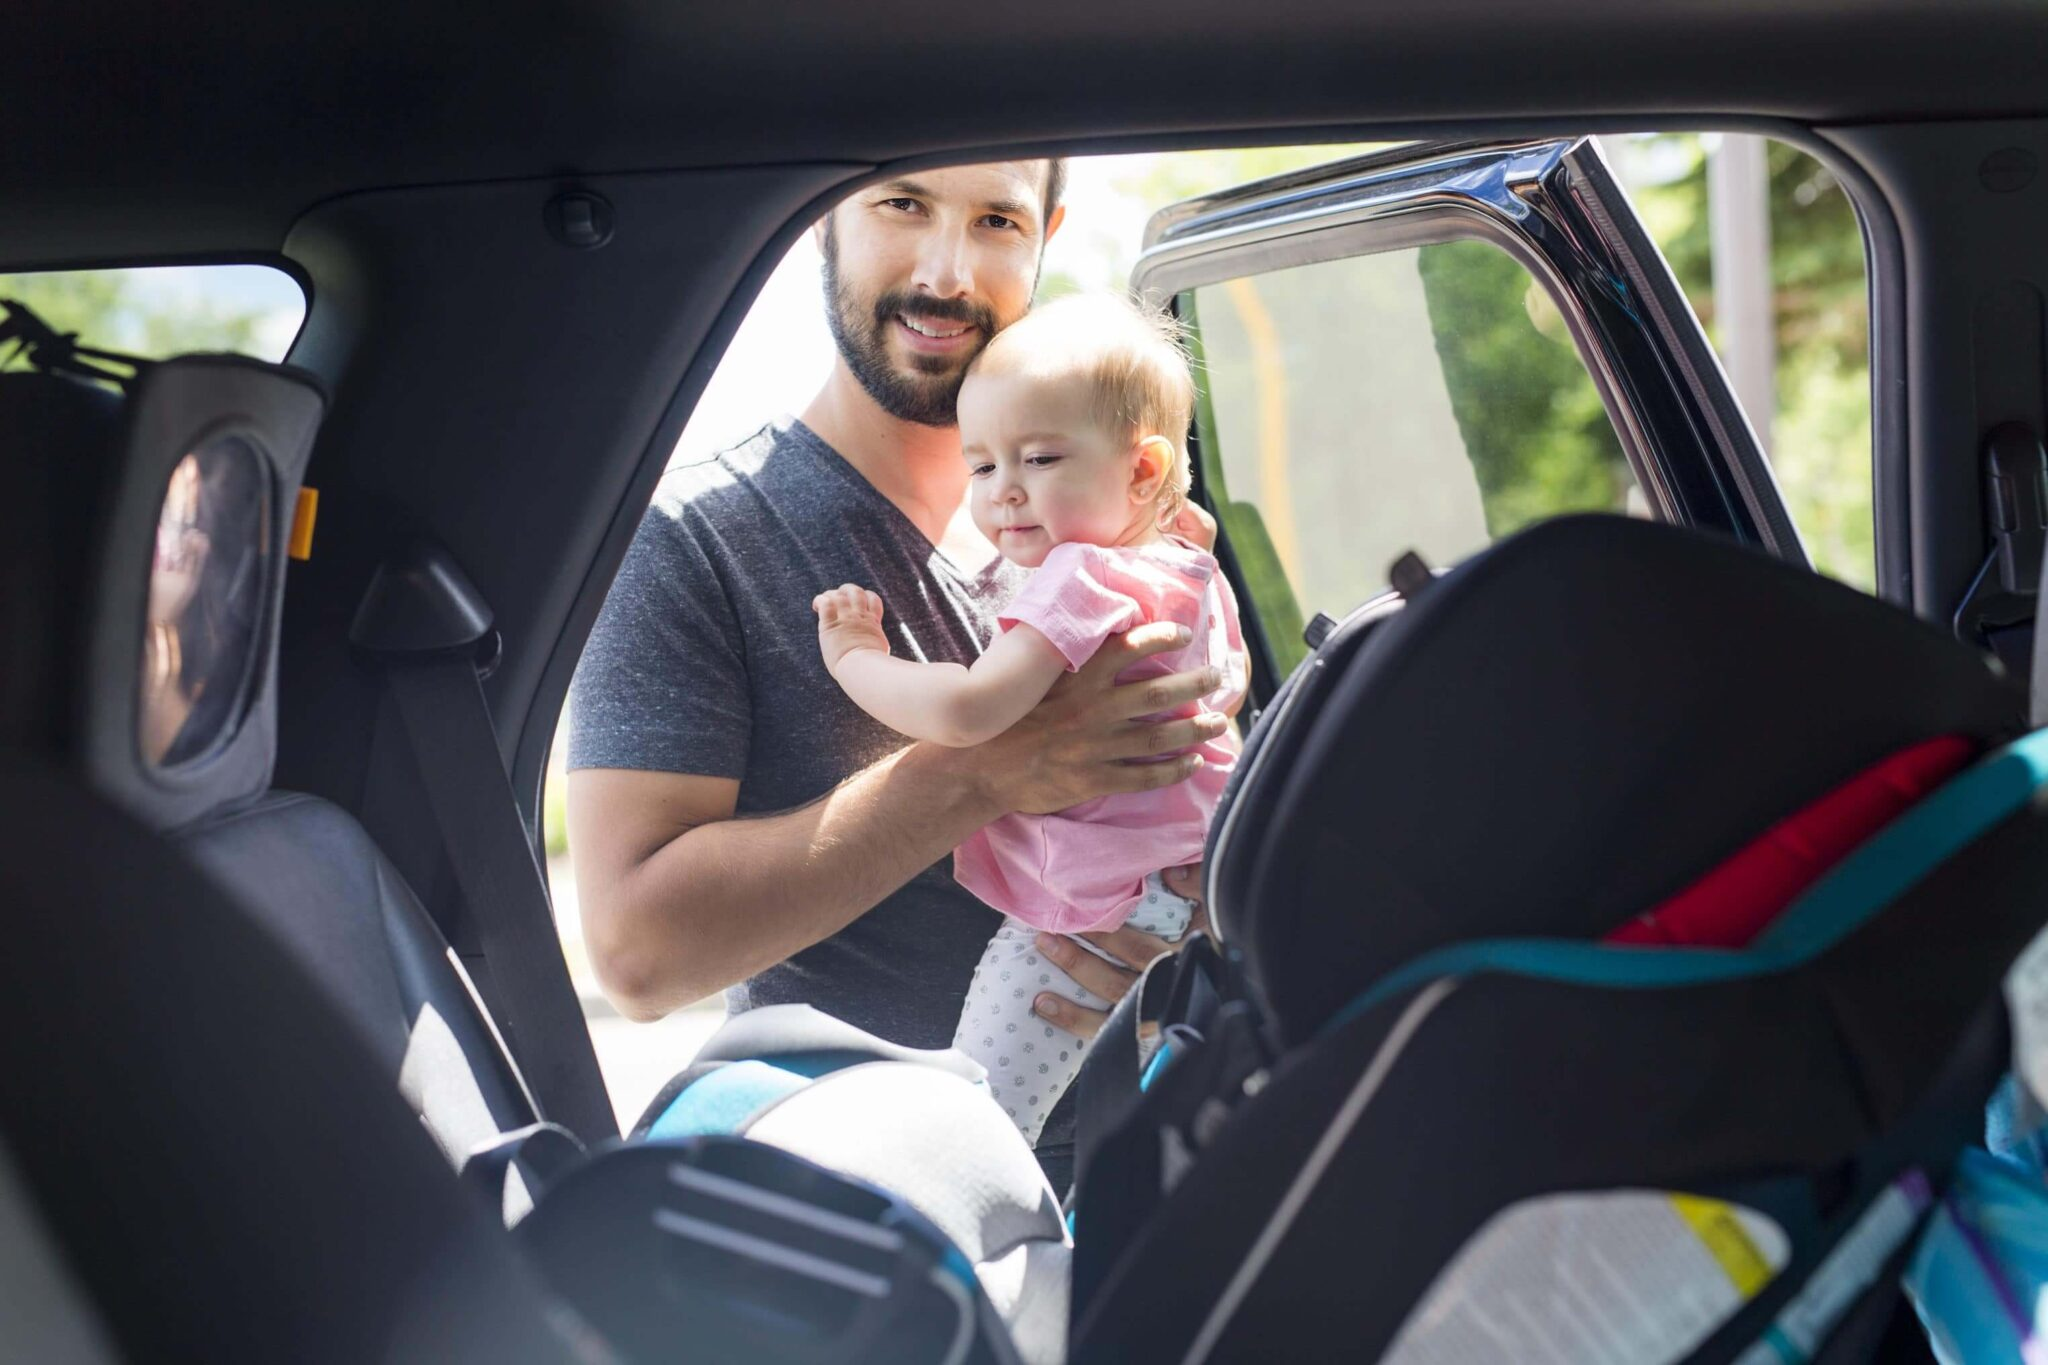 Happy man putting young child in a car seat